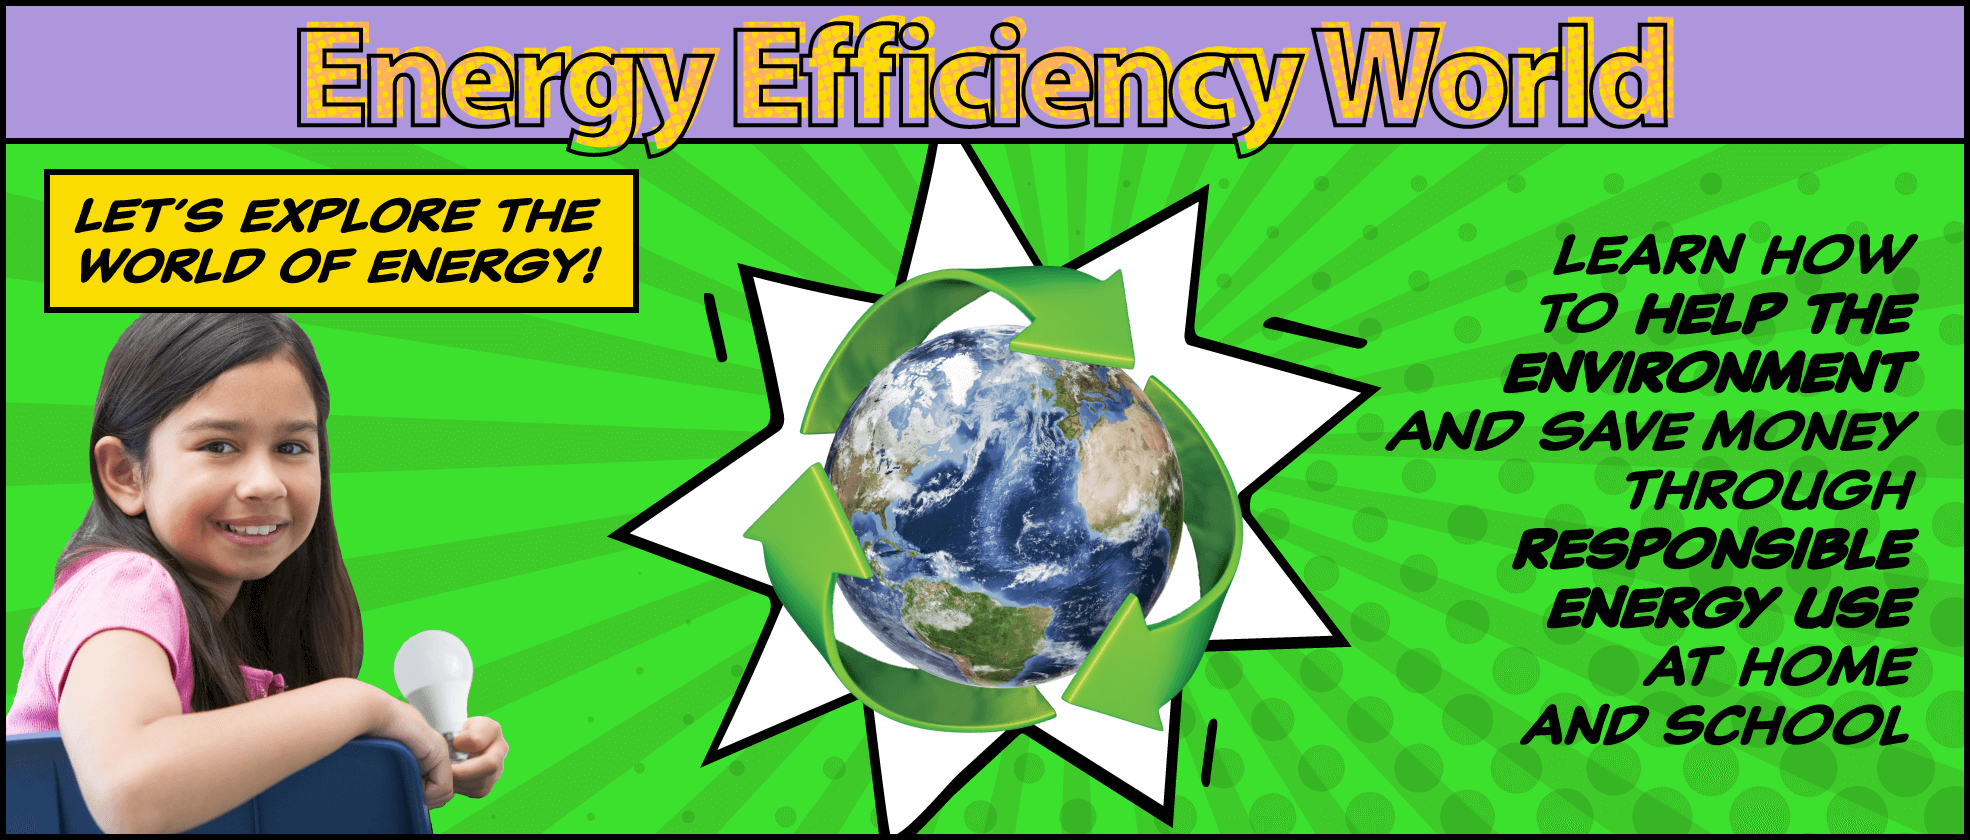 Energy Efficiency World: Let's explore the world of Energy! Learn how to help the environment and save money through responsible energy use at home and school